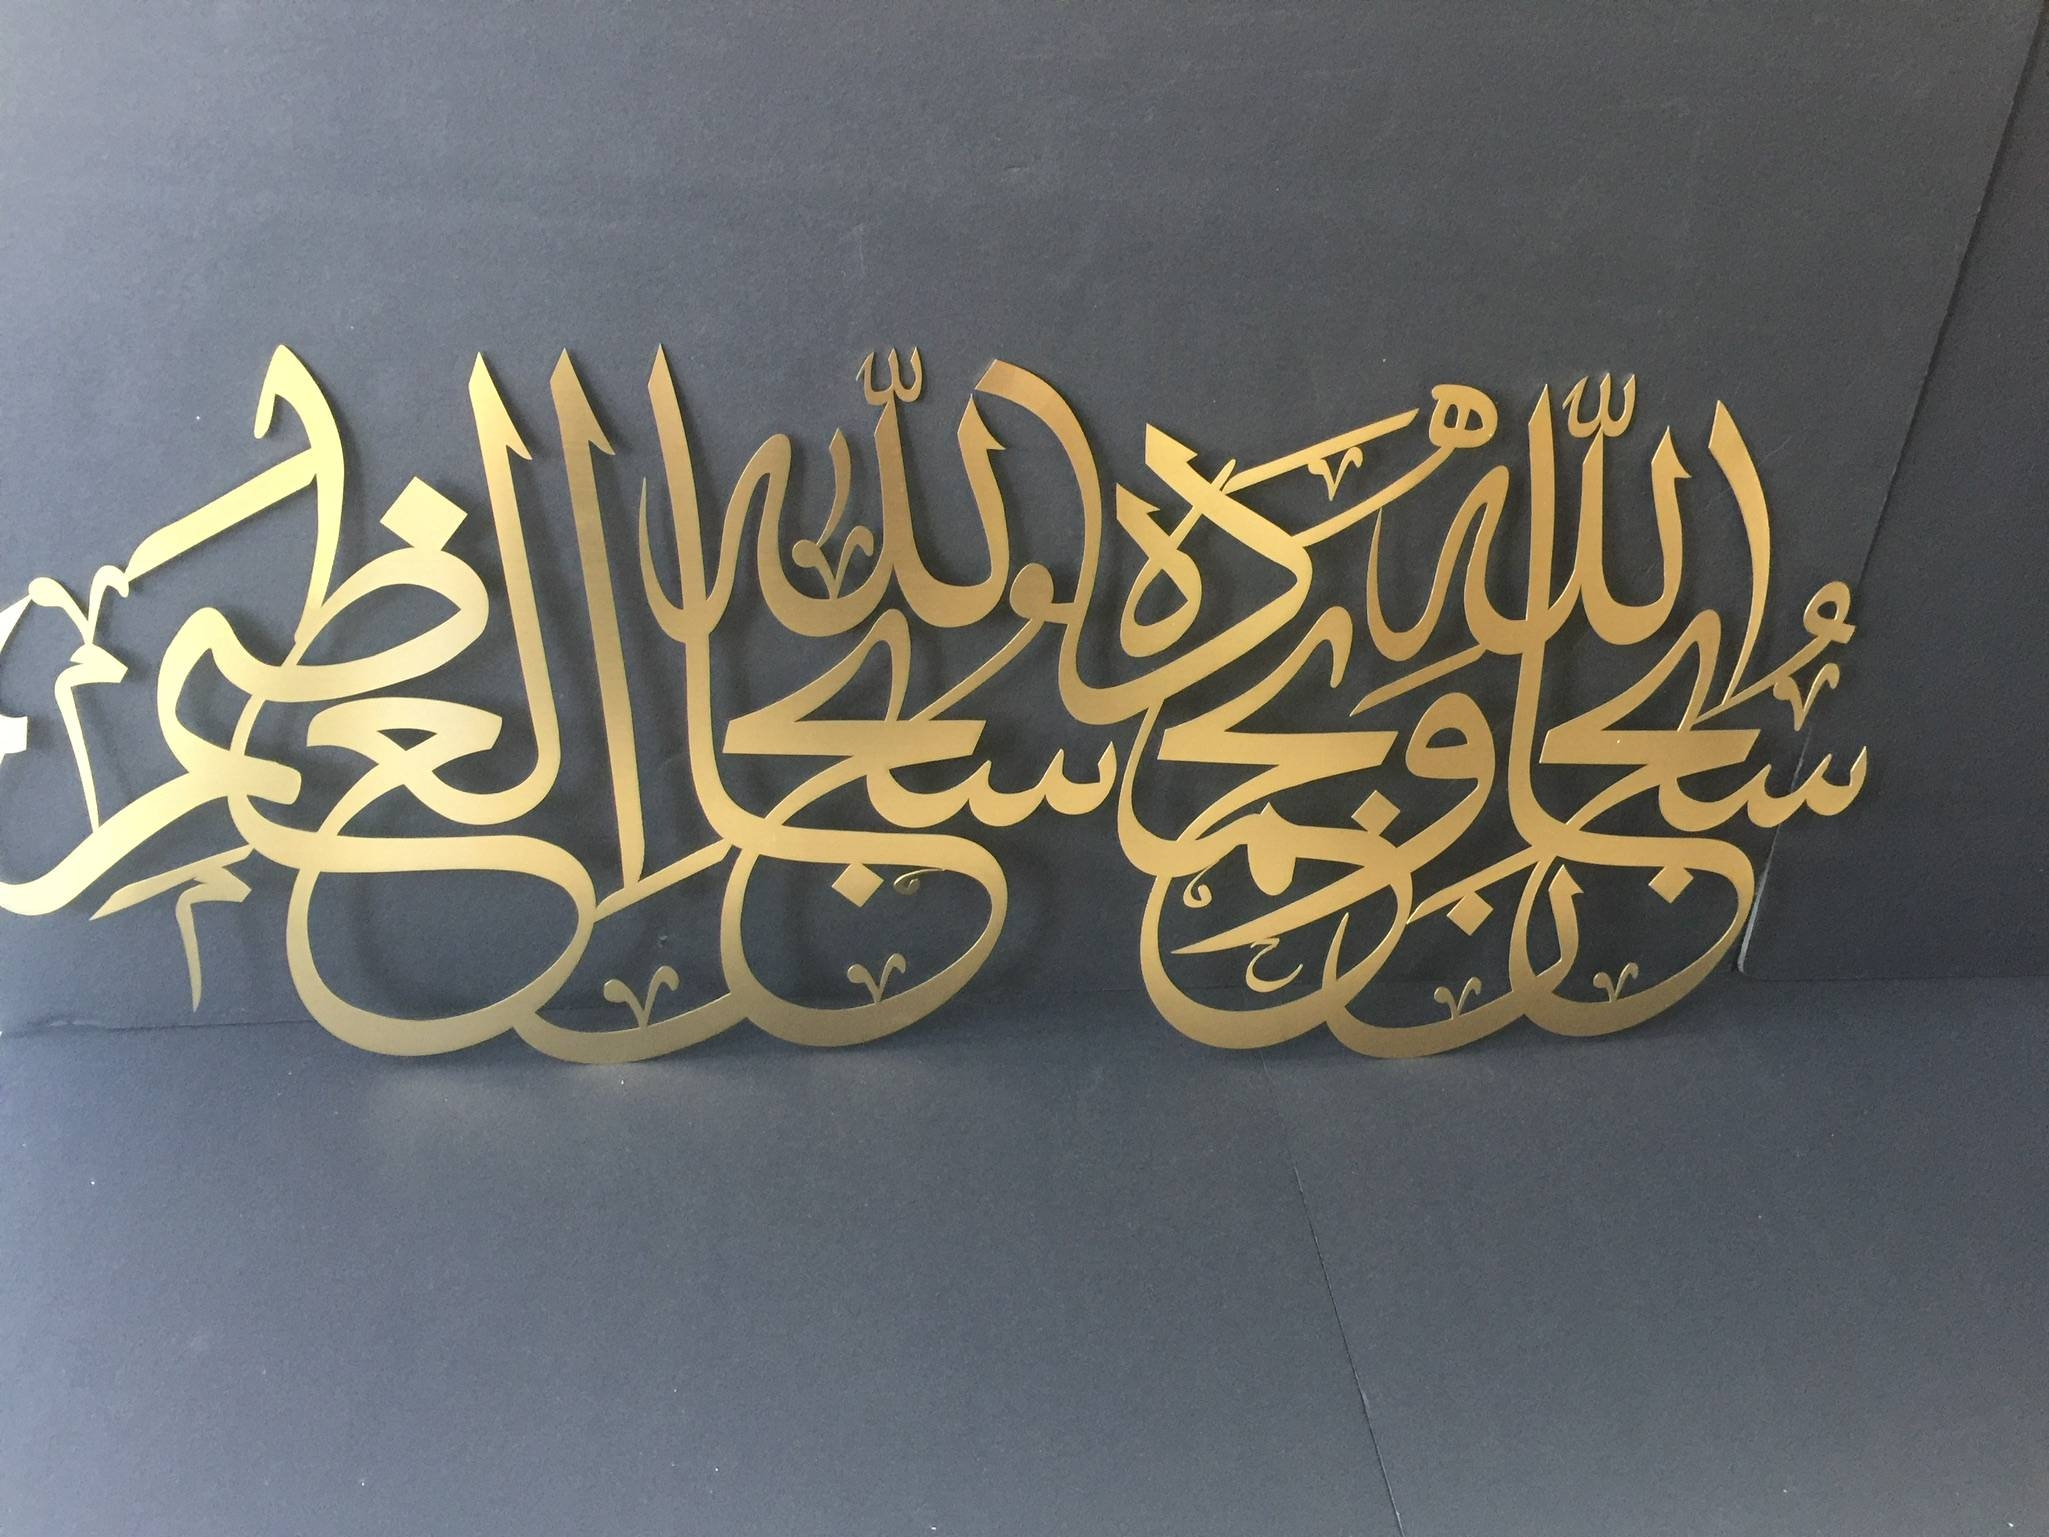 Du'aa Calligraphy – Modern Islamic Wall Art Calligraphy Brushed Throughout Most Current Islamic Metal Wall Art (View 5 of 20)